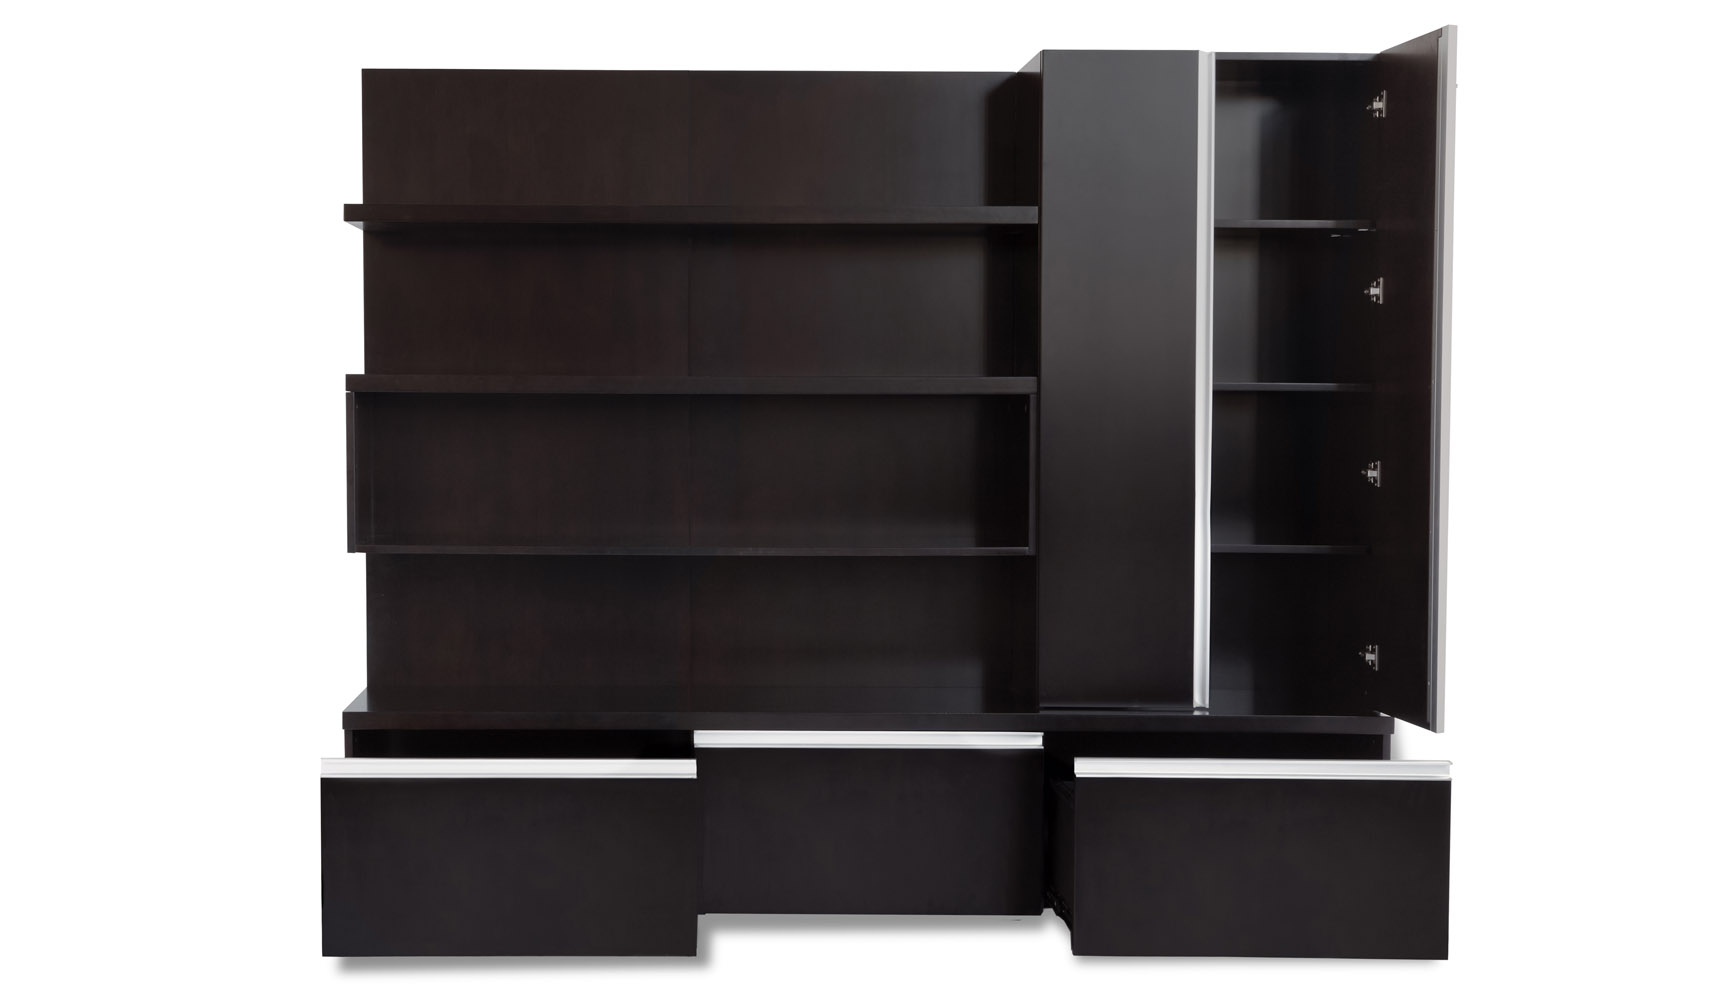 Carter Walnut Wood Modern Wall Unit With Shelving And File